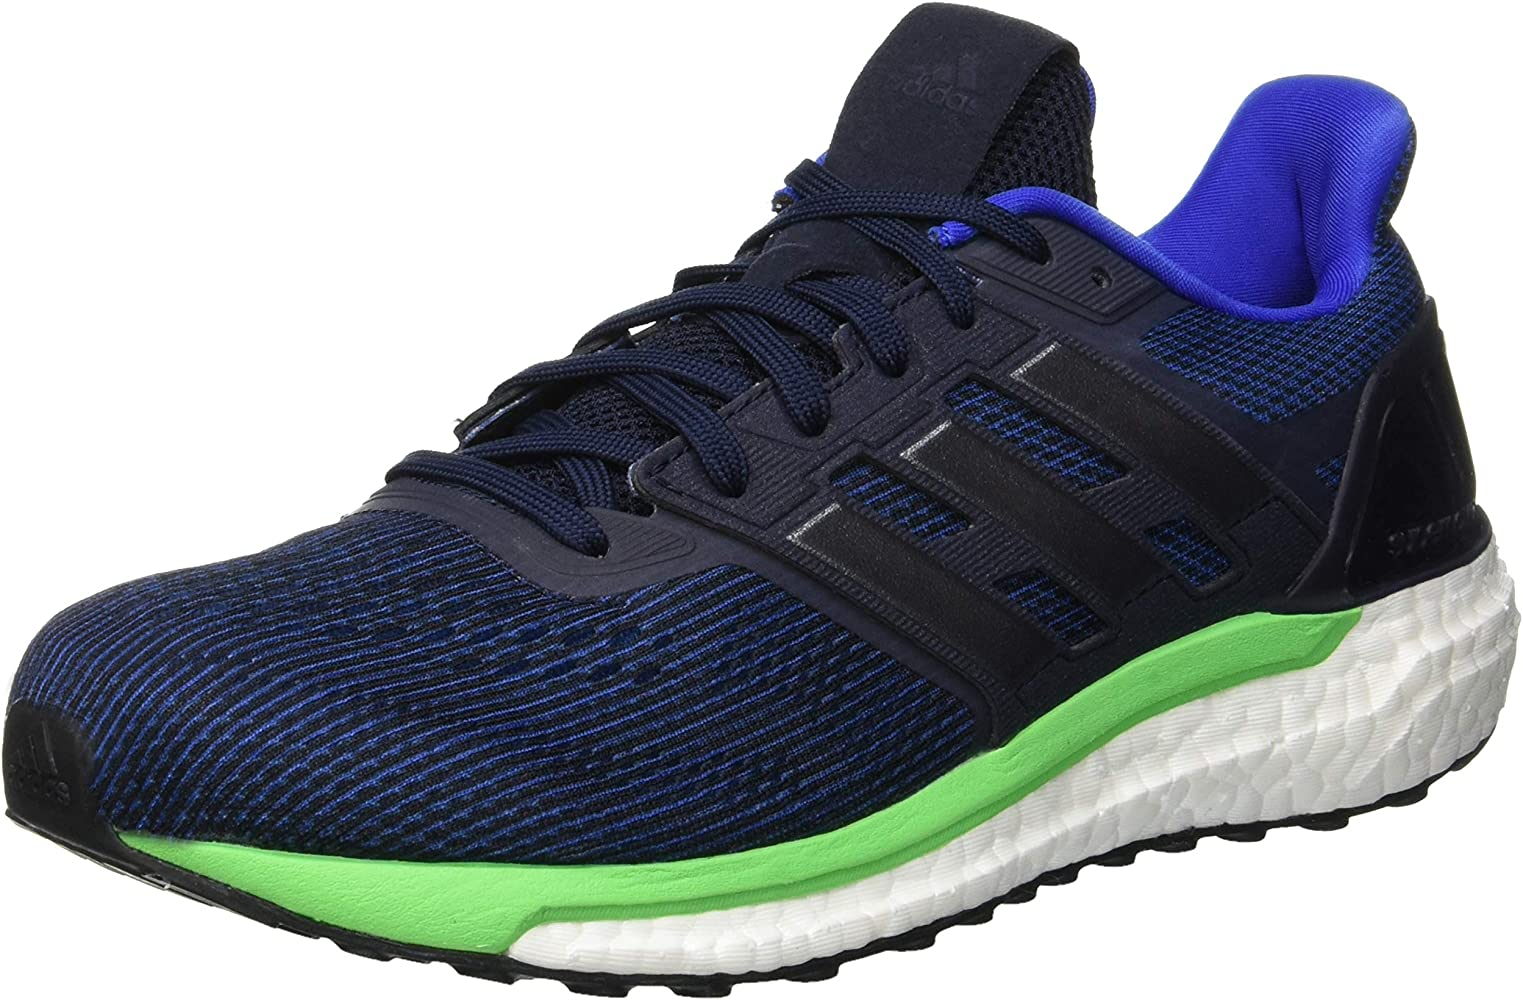 adidas Supernova M, Zapatillas de Running para Hombre, Azul (Legend Ink/Night Met./Shock Lime), 42 EU: Amazon.es: Zapatos y complementos